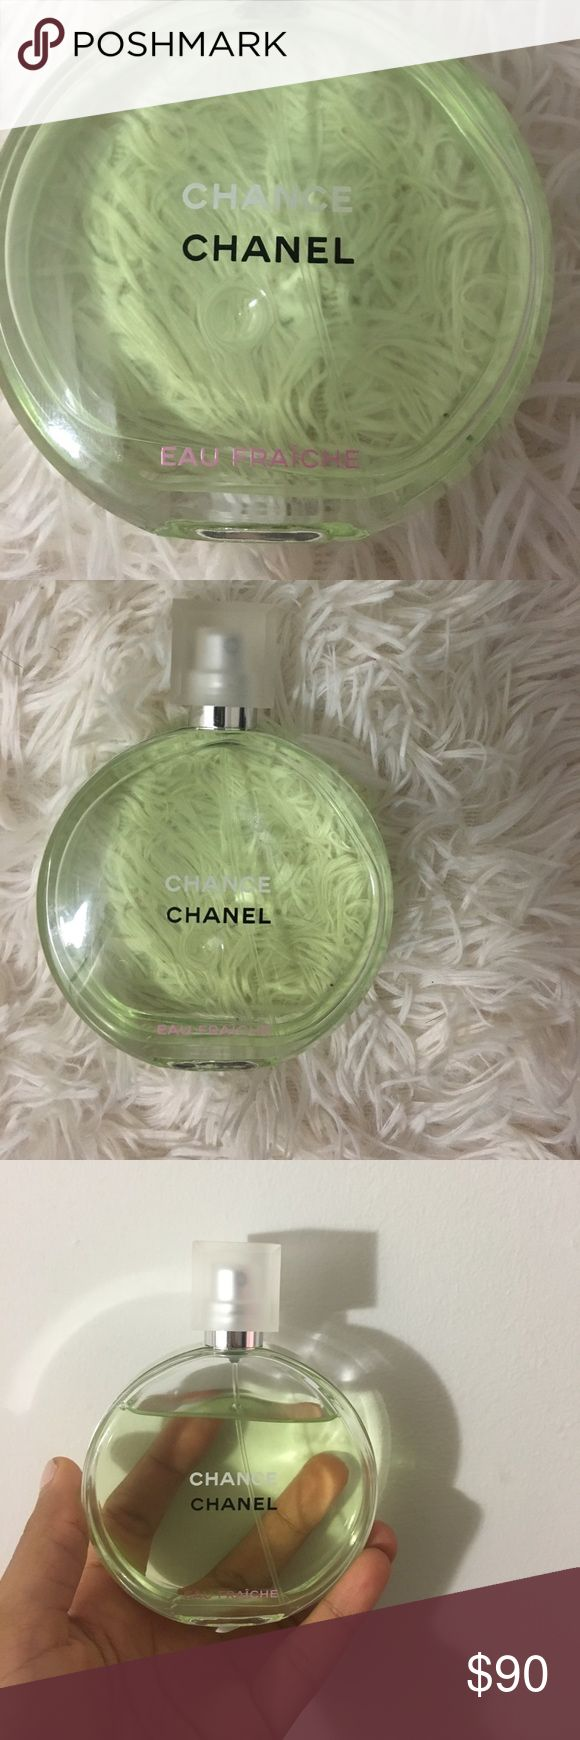 Chanel Chance Perfume CHANCE EAU FRAÎCHE Eau de Toilette 3.4oz not even a quarter of the product was used. ProDuct info: CHANCE Eau FraÎche, a vibrant incarnation of the unexpected fragrance, now takes on a sparkling freshness. The unexpected floral bursts with a lightness and zest as notes of citrus, Water Hyacinth and Jasmine Absolute are highlighted and energized with woody notes of Amber of Patchouli and Fresh Vetiver. AUTHENTIC !!! CHANEL Other